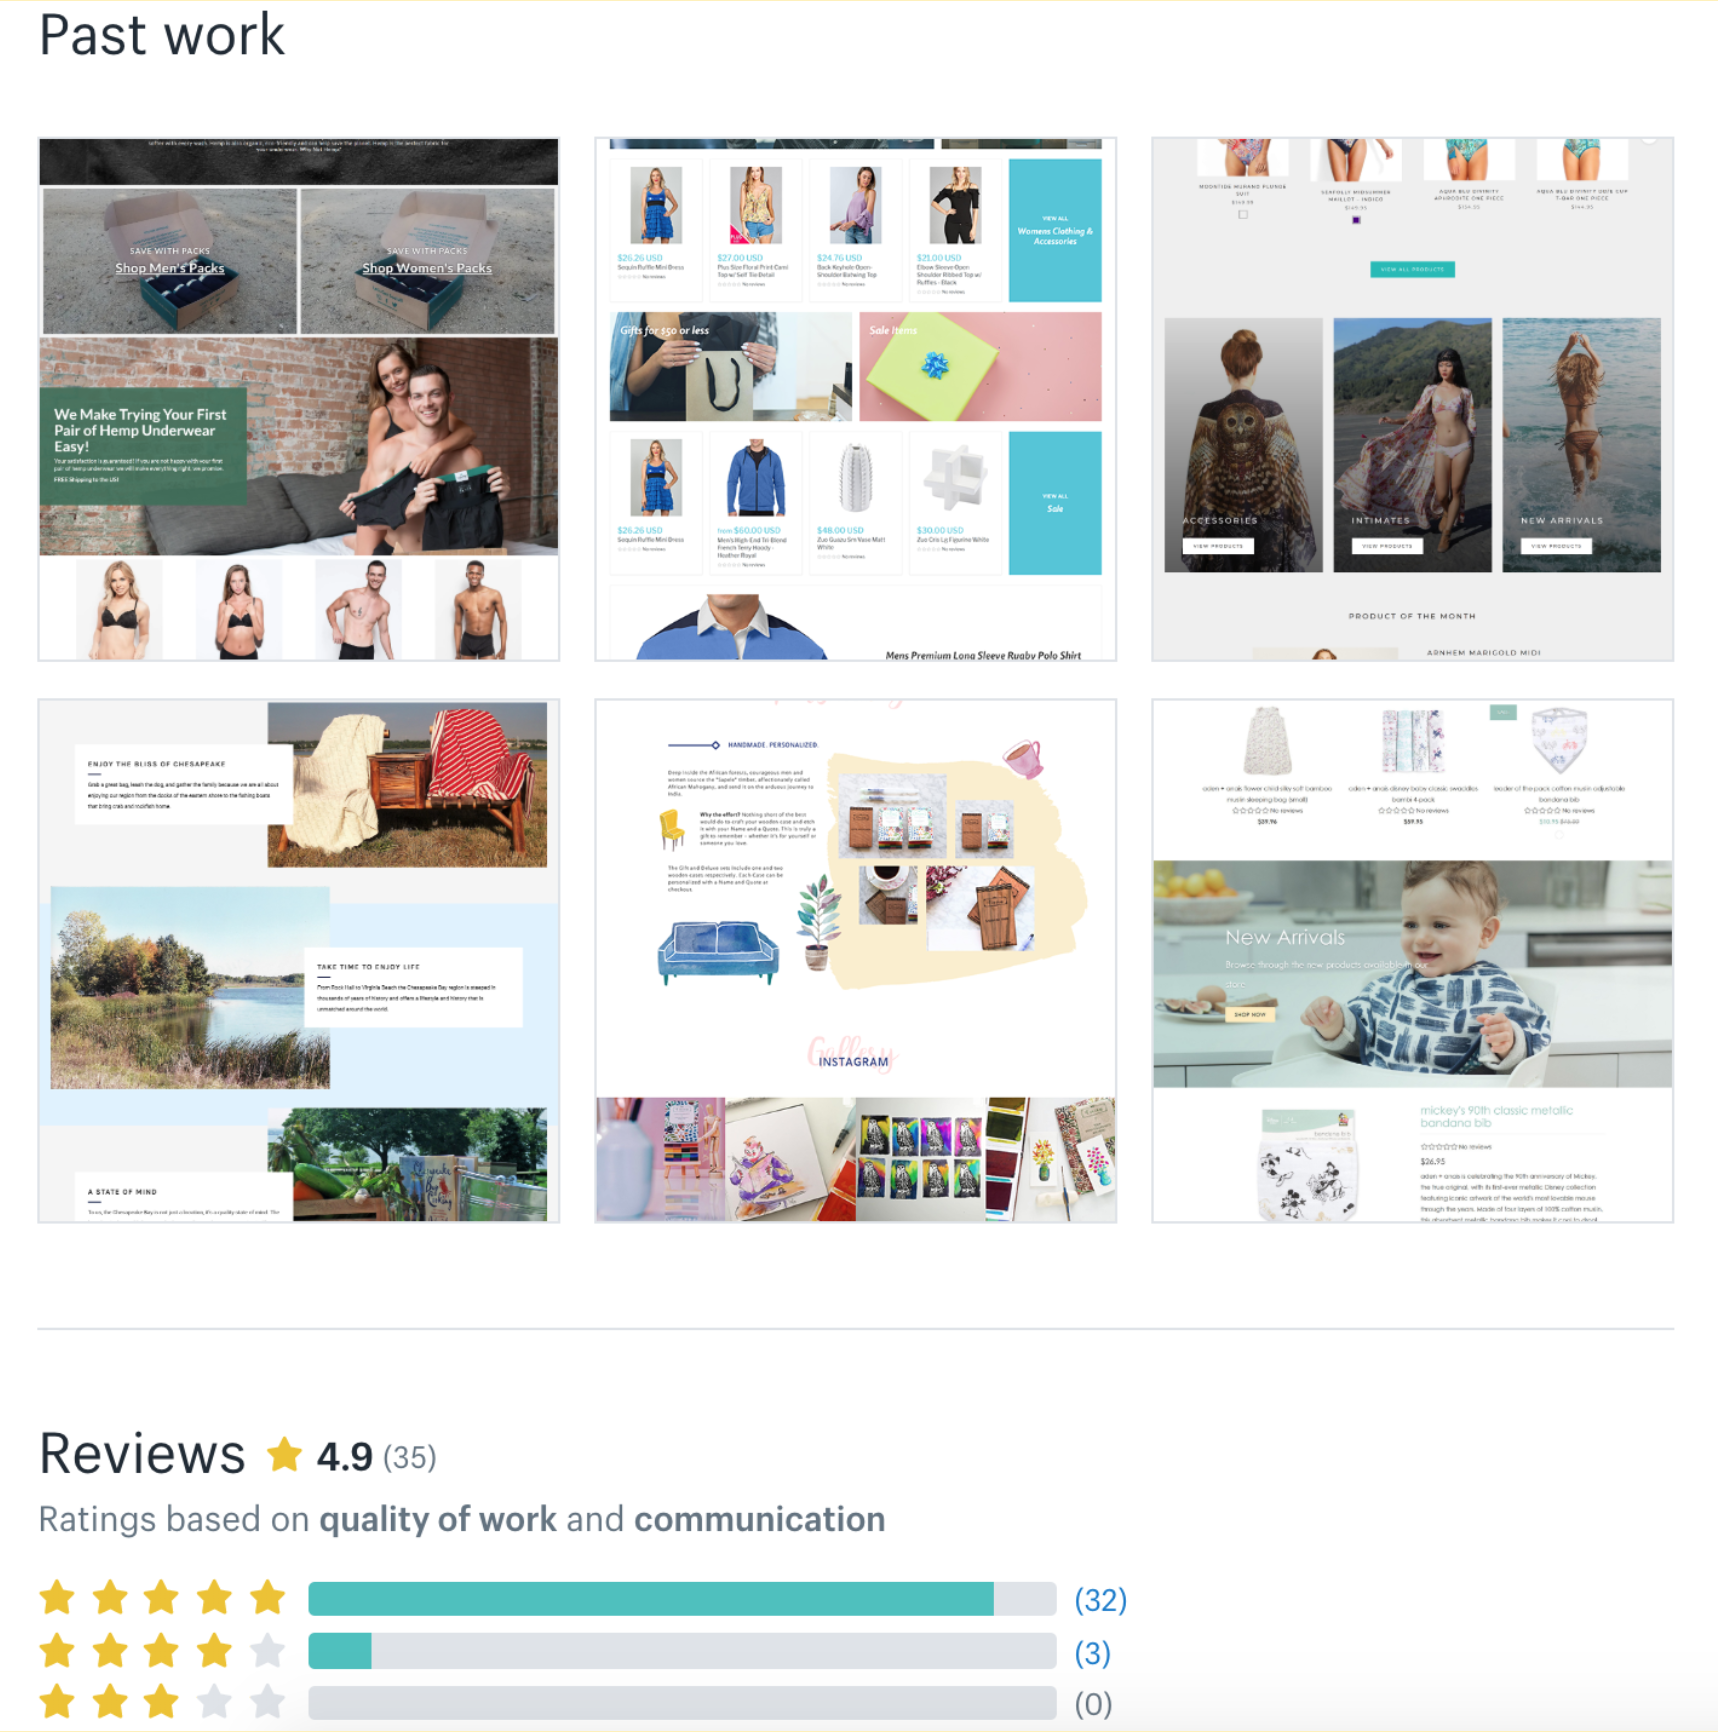 Image that shows an example of the Past Work and Reviews section of an Expert profile in the marketplace